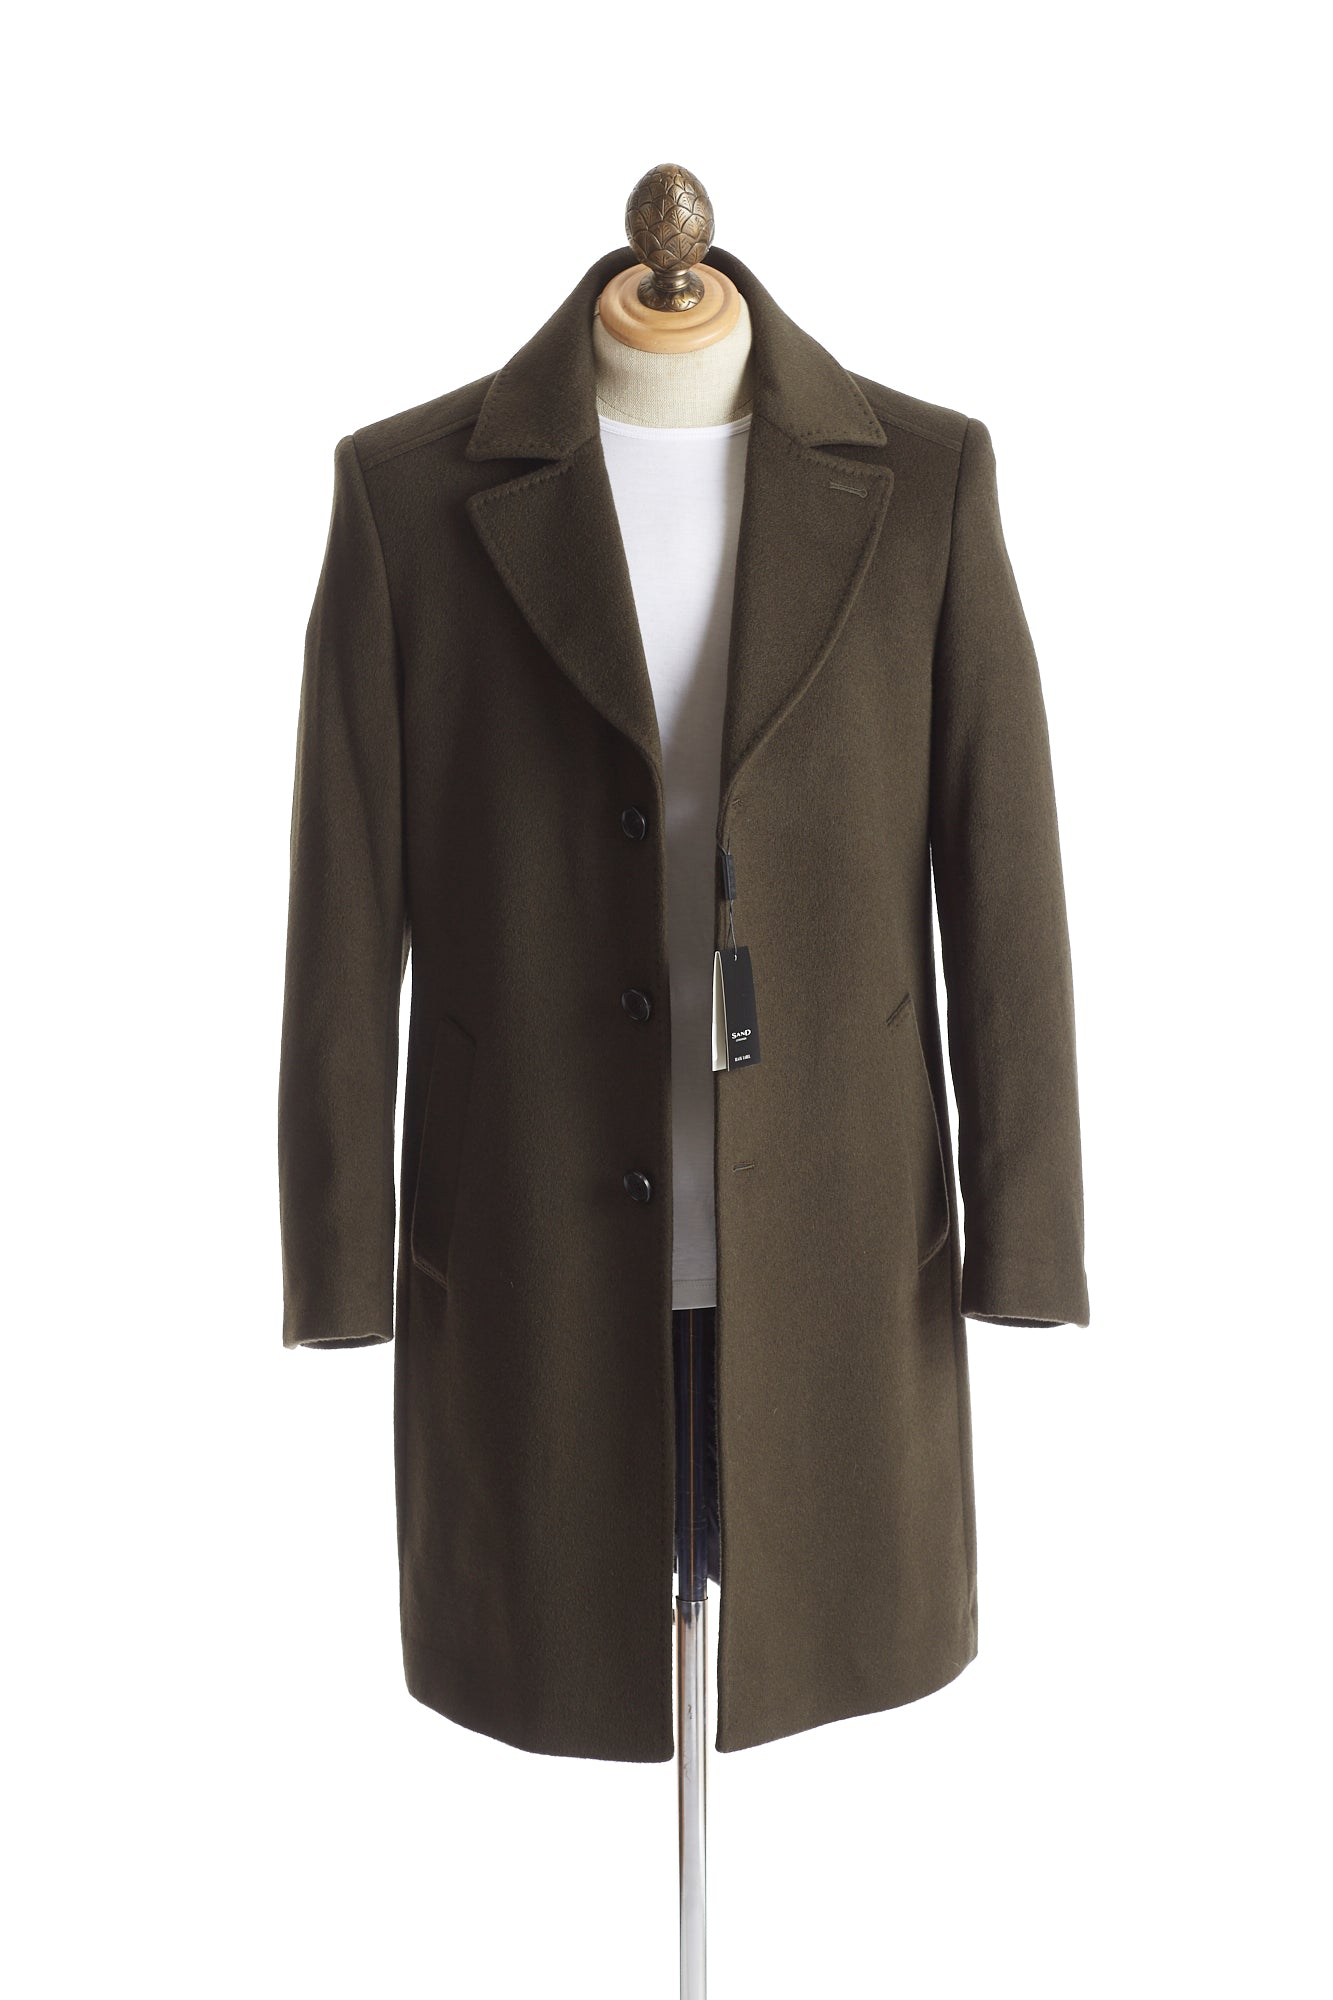 SAND Olive Green Wool-Cashmere Officer Coat